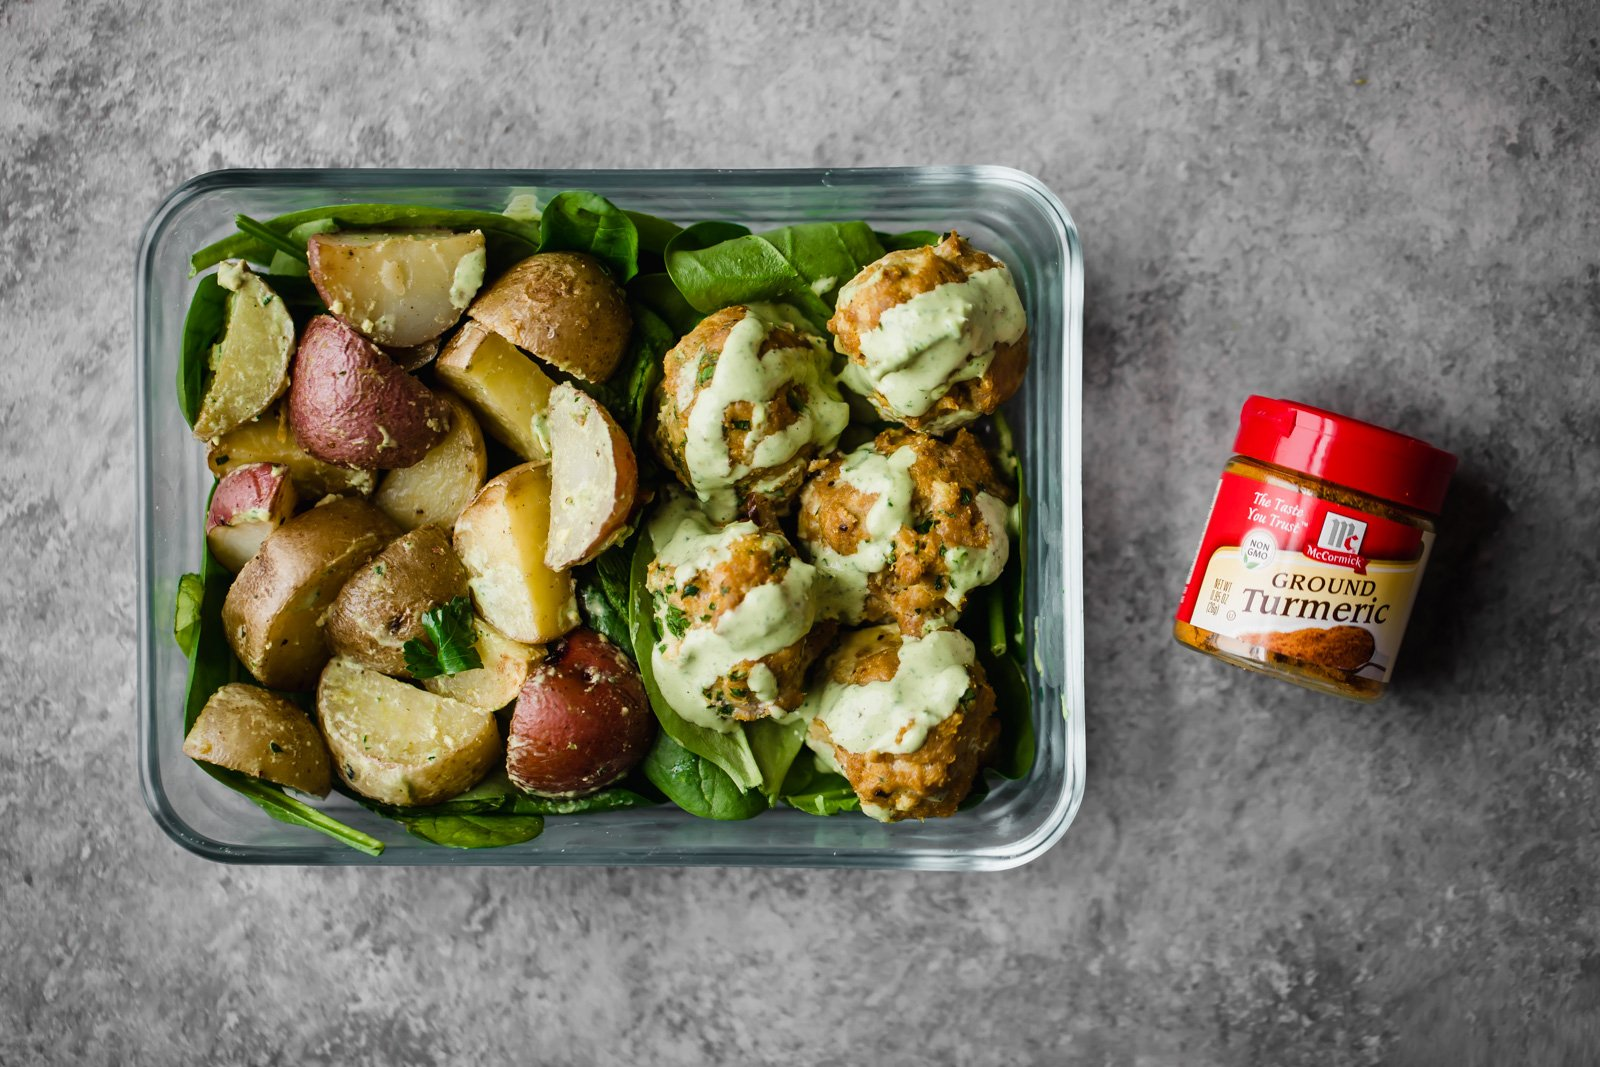 turmeric chicken meatballs with potatoes in a meal prep container